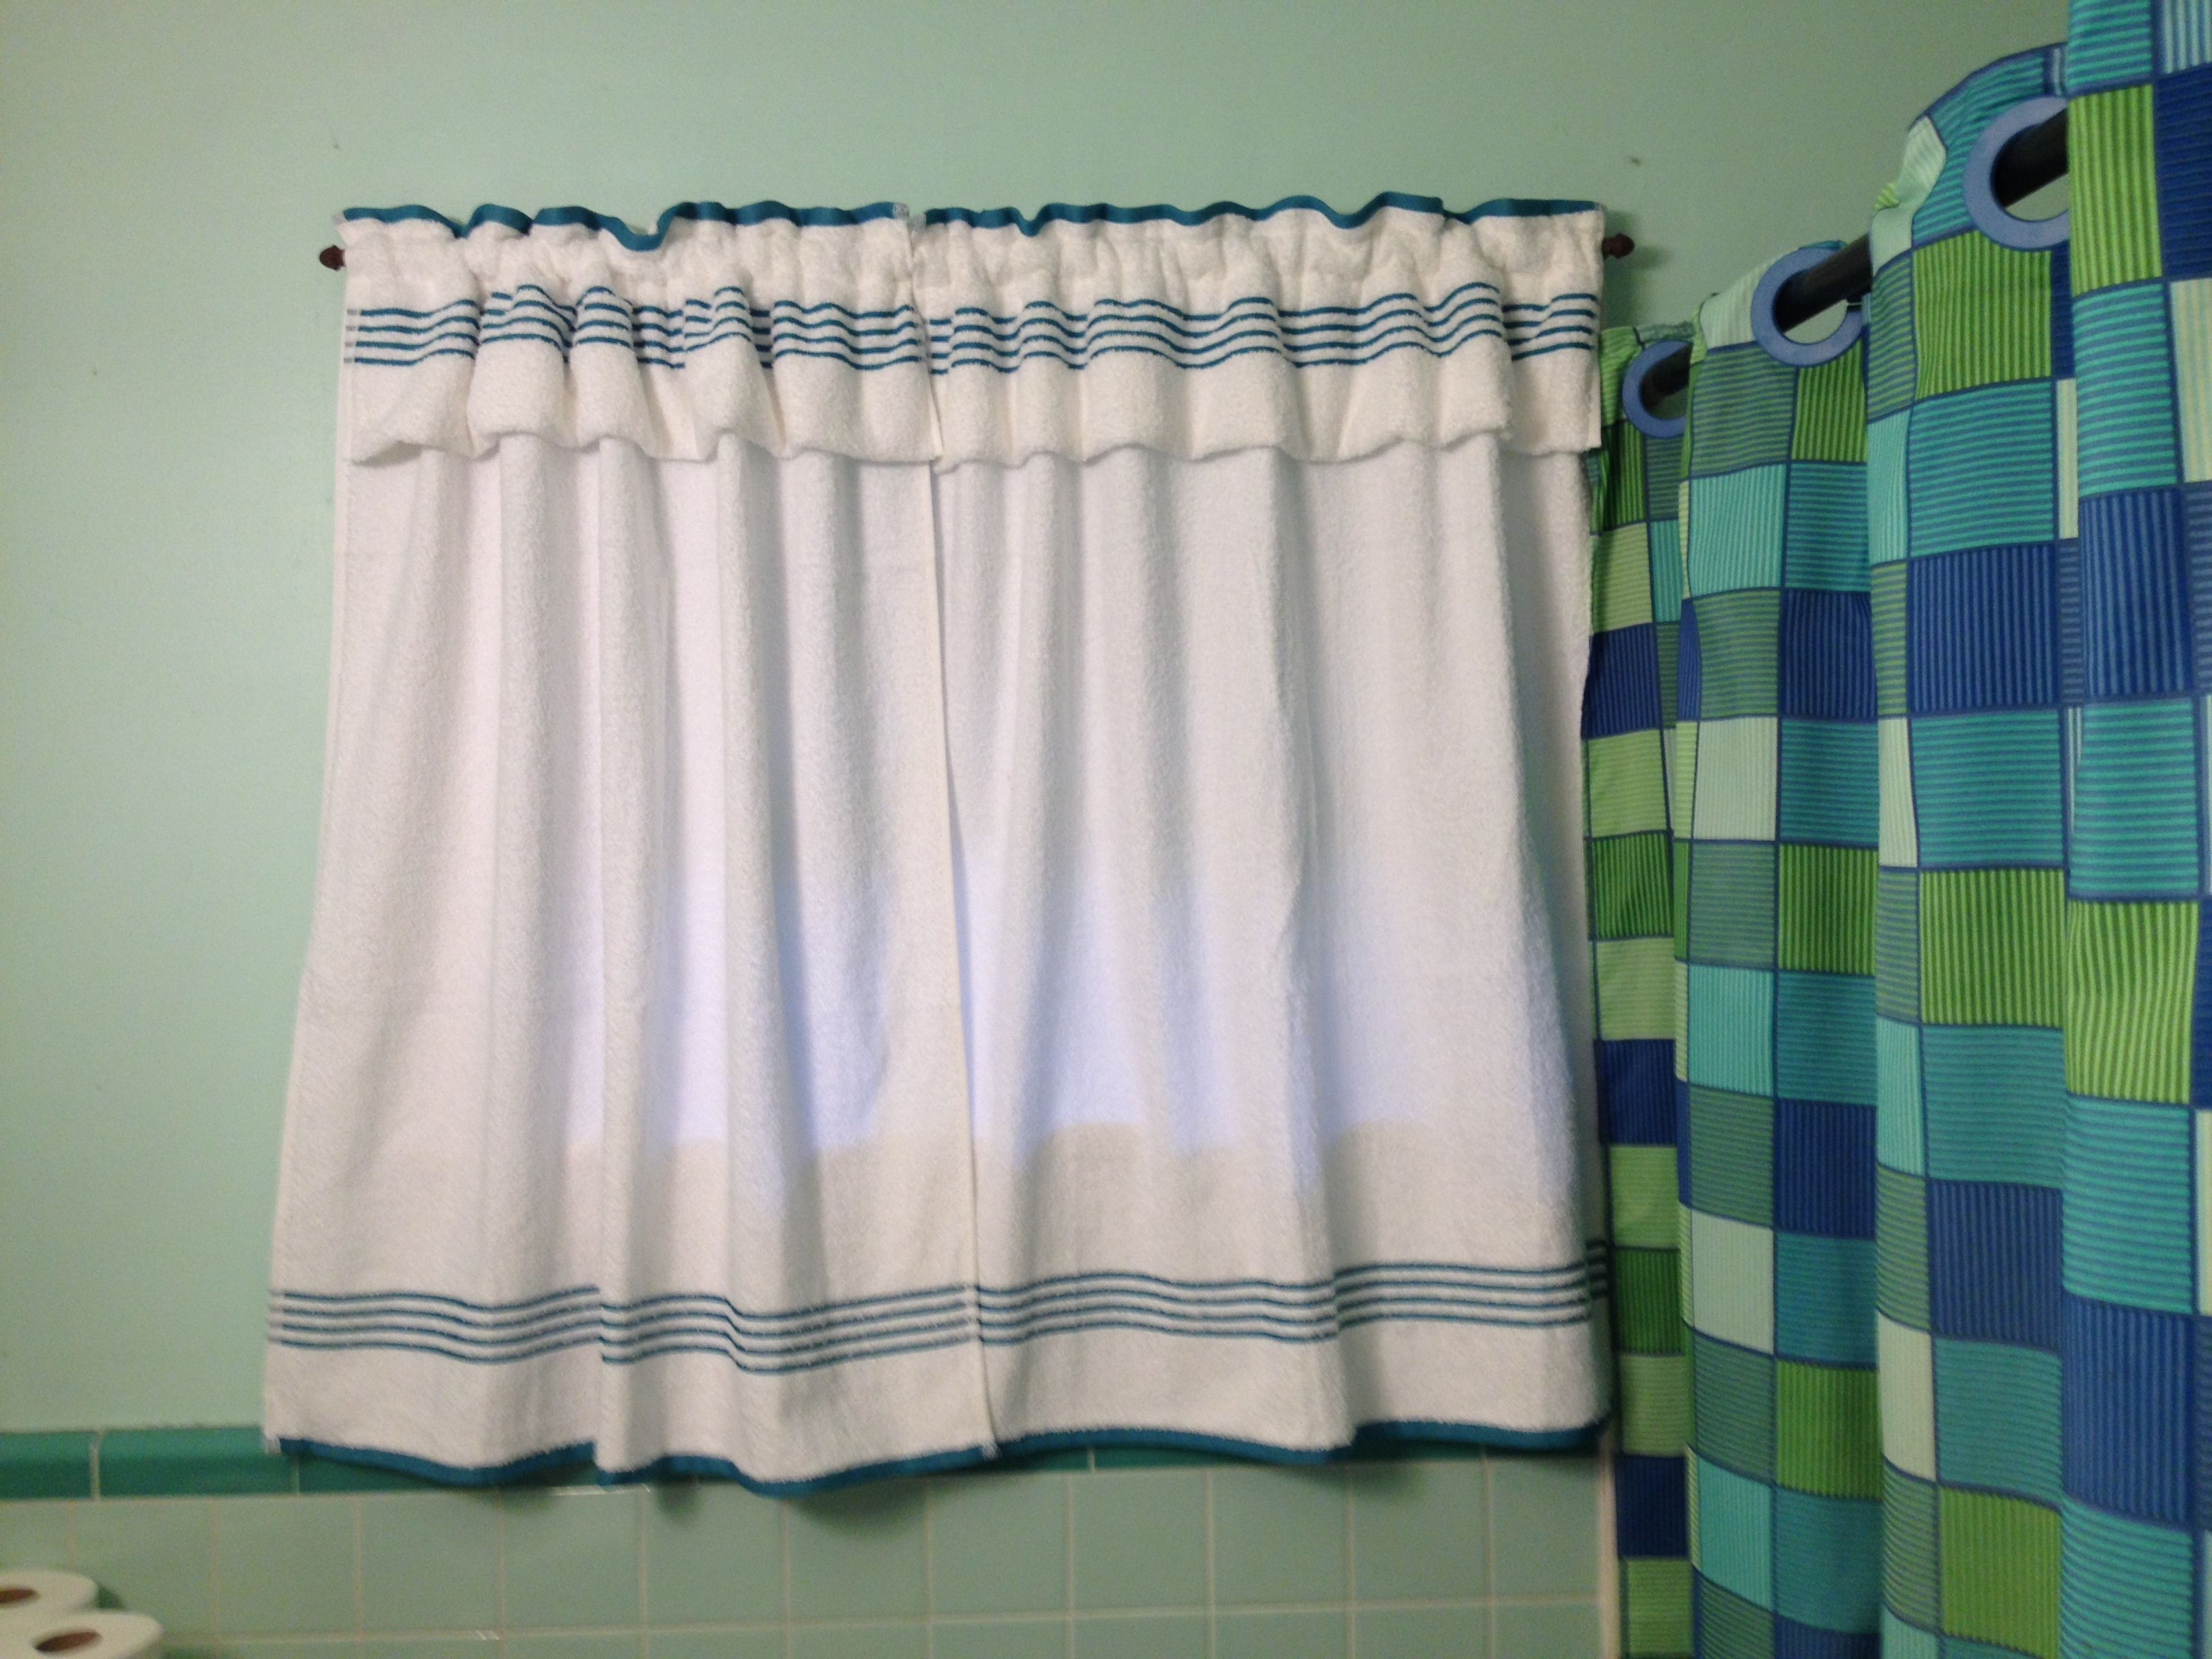 Bathroom Curtains Made From Bath Towels The 8 Inch Pocket Tuck